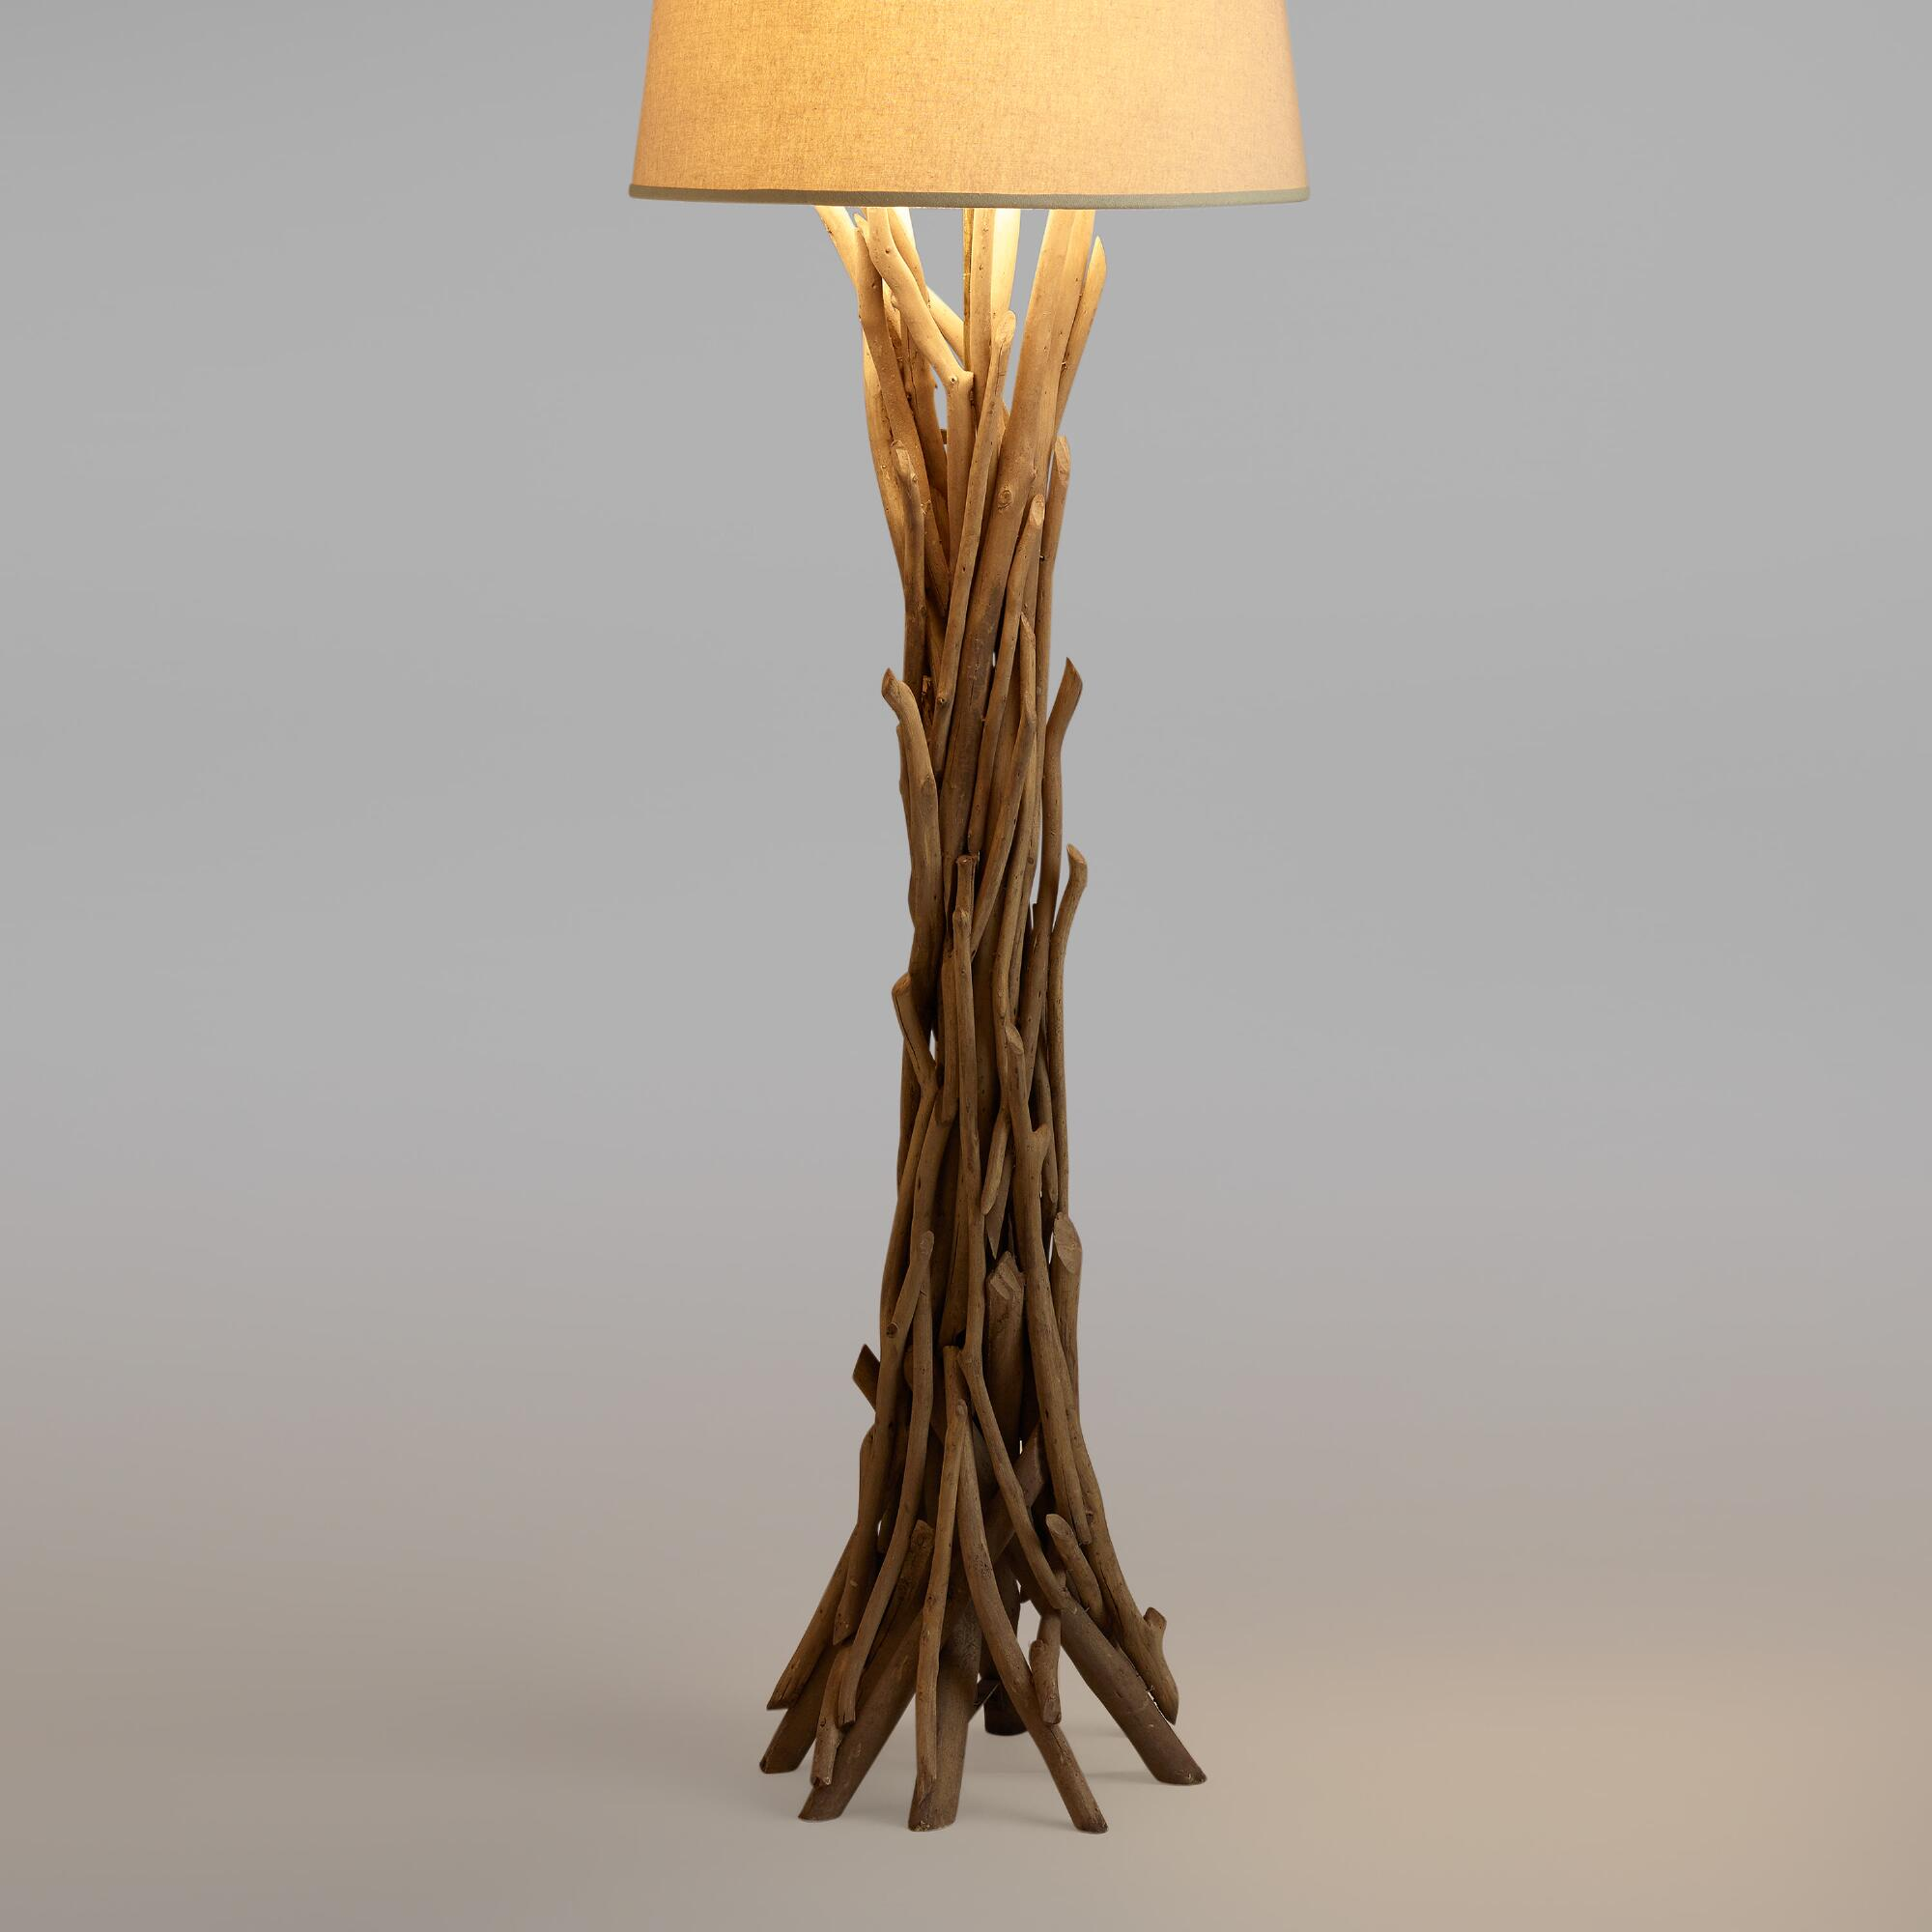 Lamp Plus Stores: The Uses Of Driftwood Table Lamps